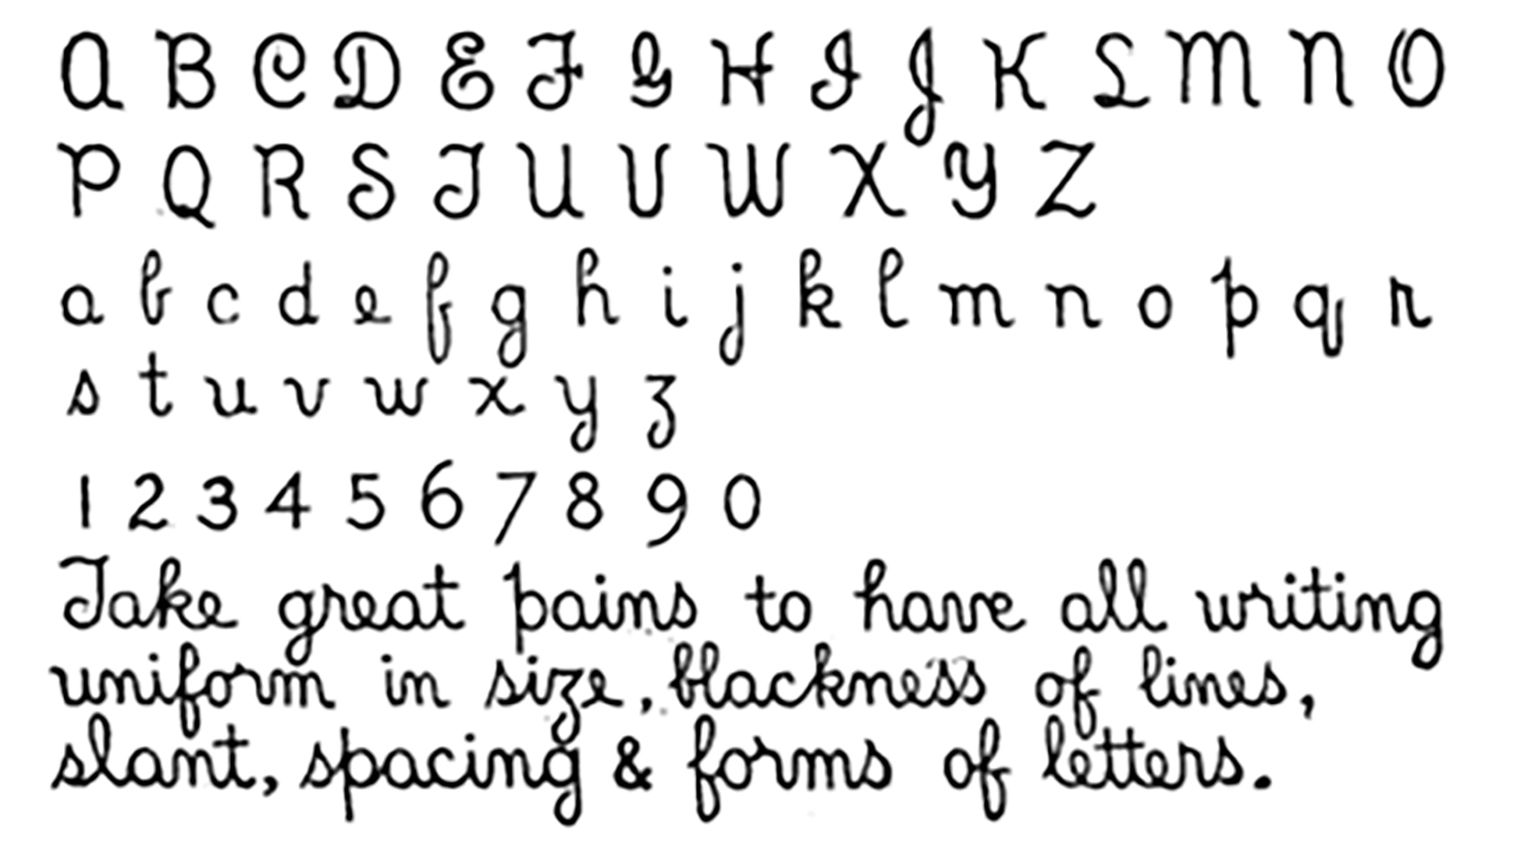 Image of letters and numbers of the original library hand.